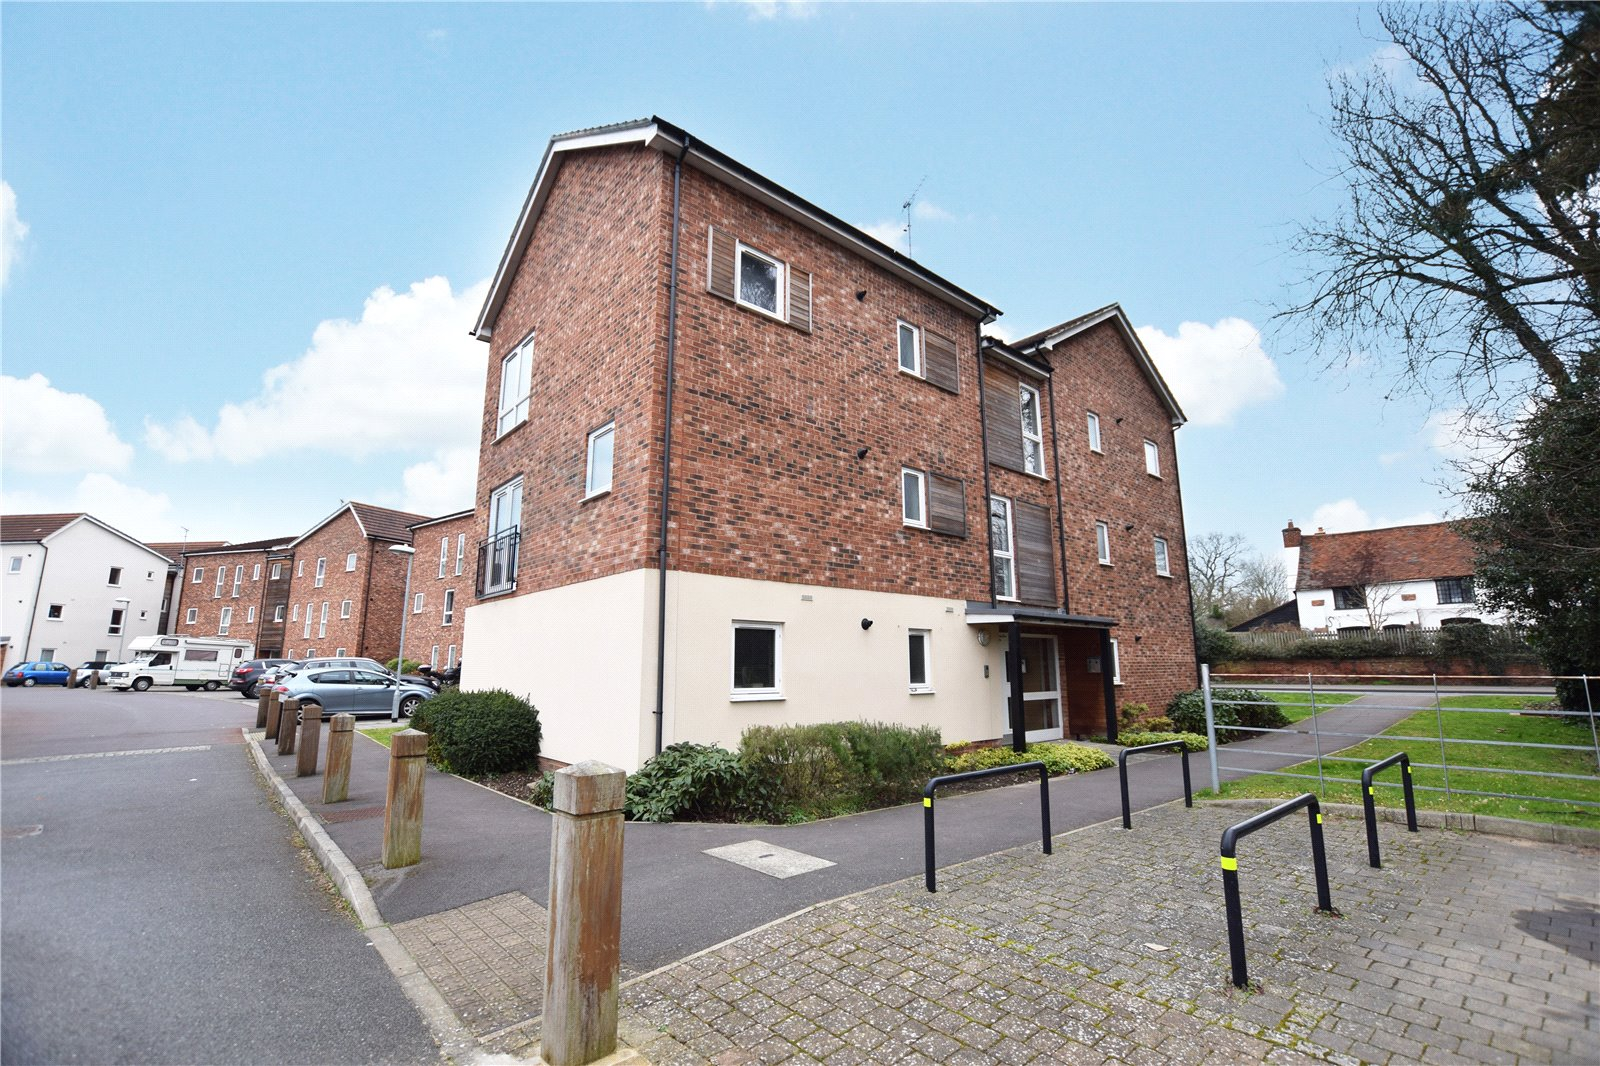 1 Bedroom Apartment Flat for sale in Hampden Crescent, Bracknell, Berkshire, RG12